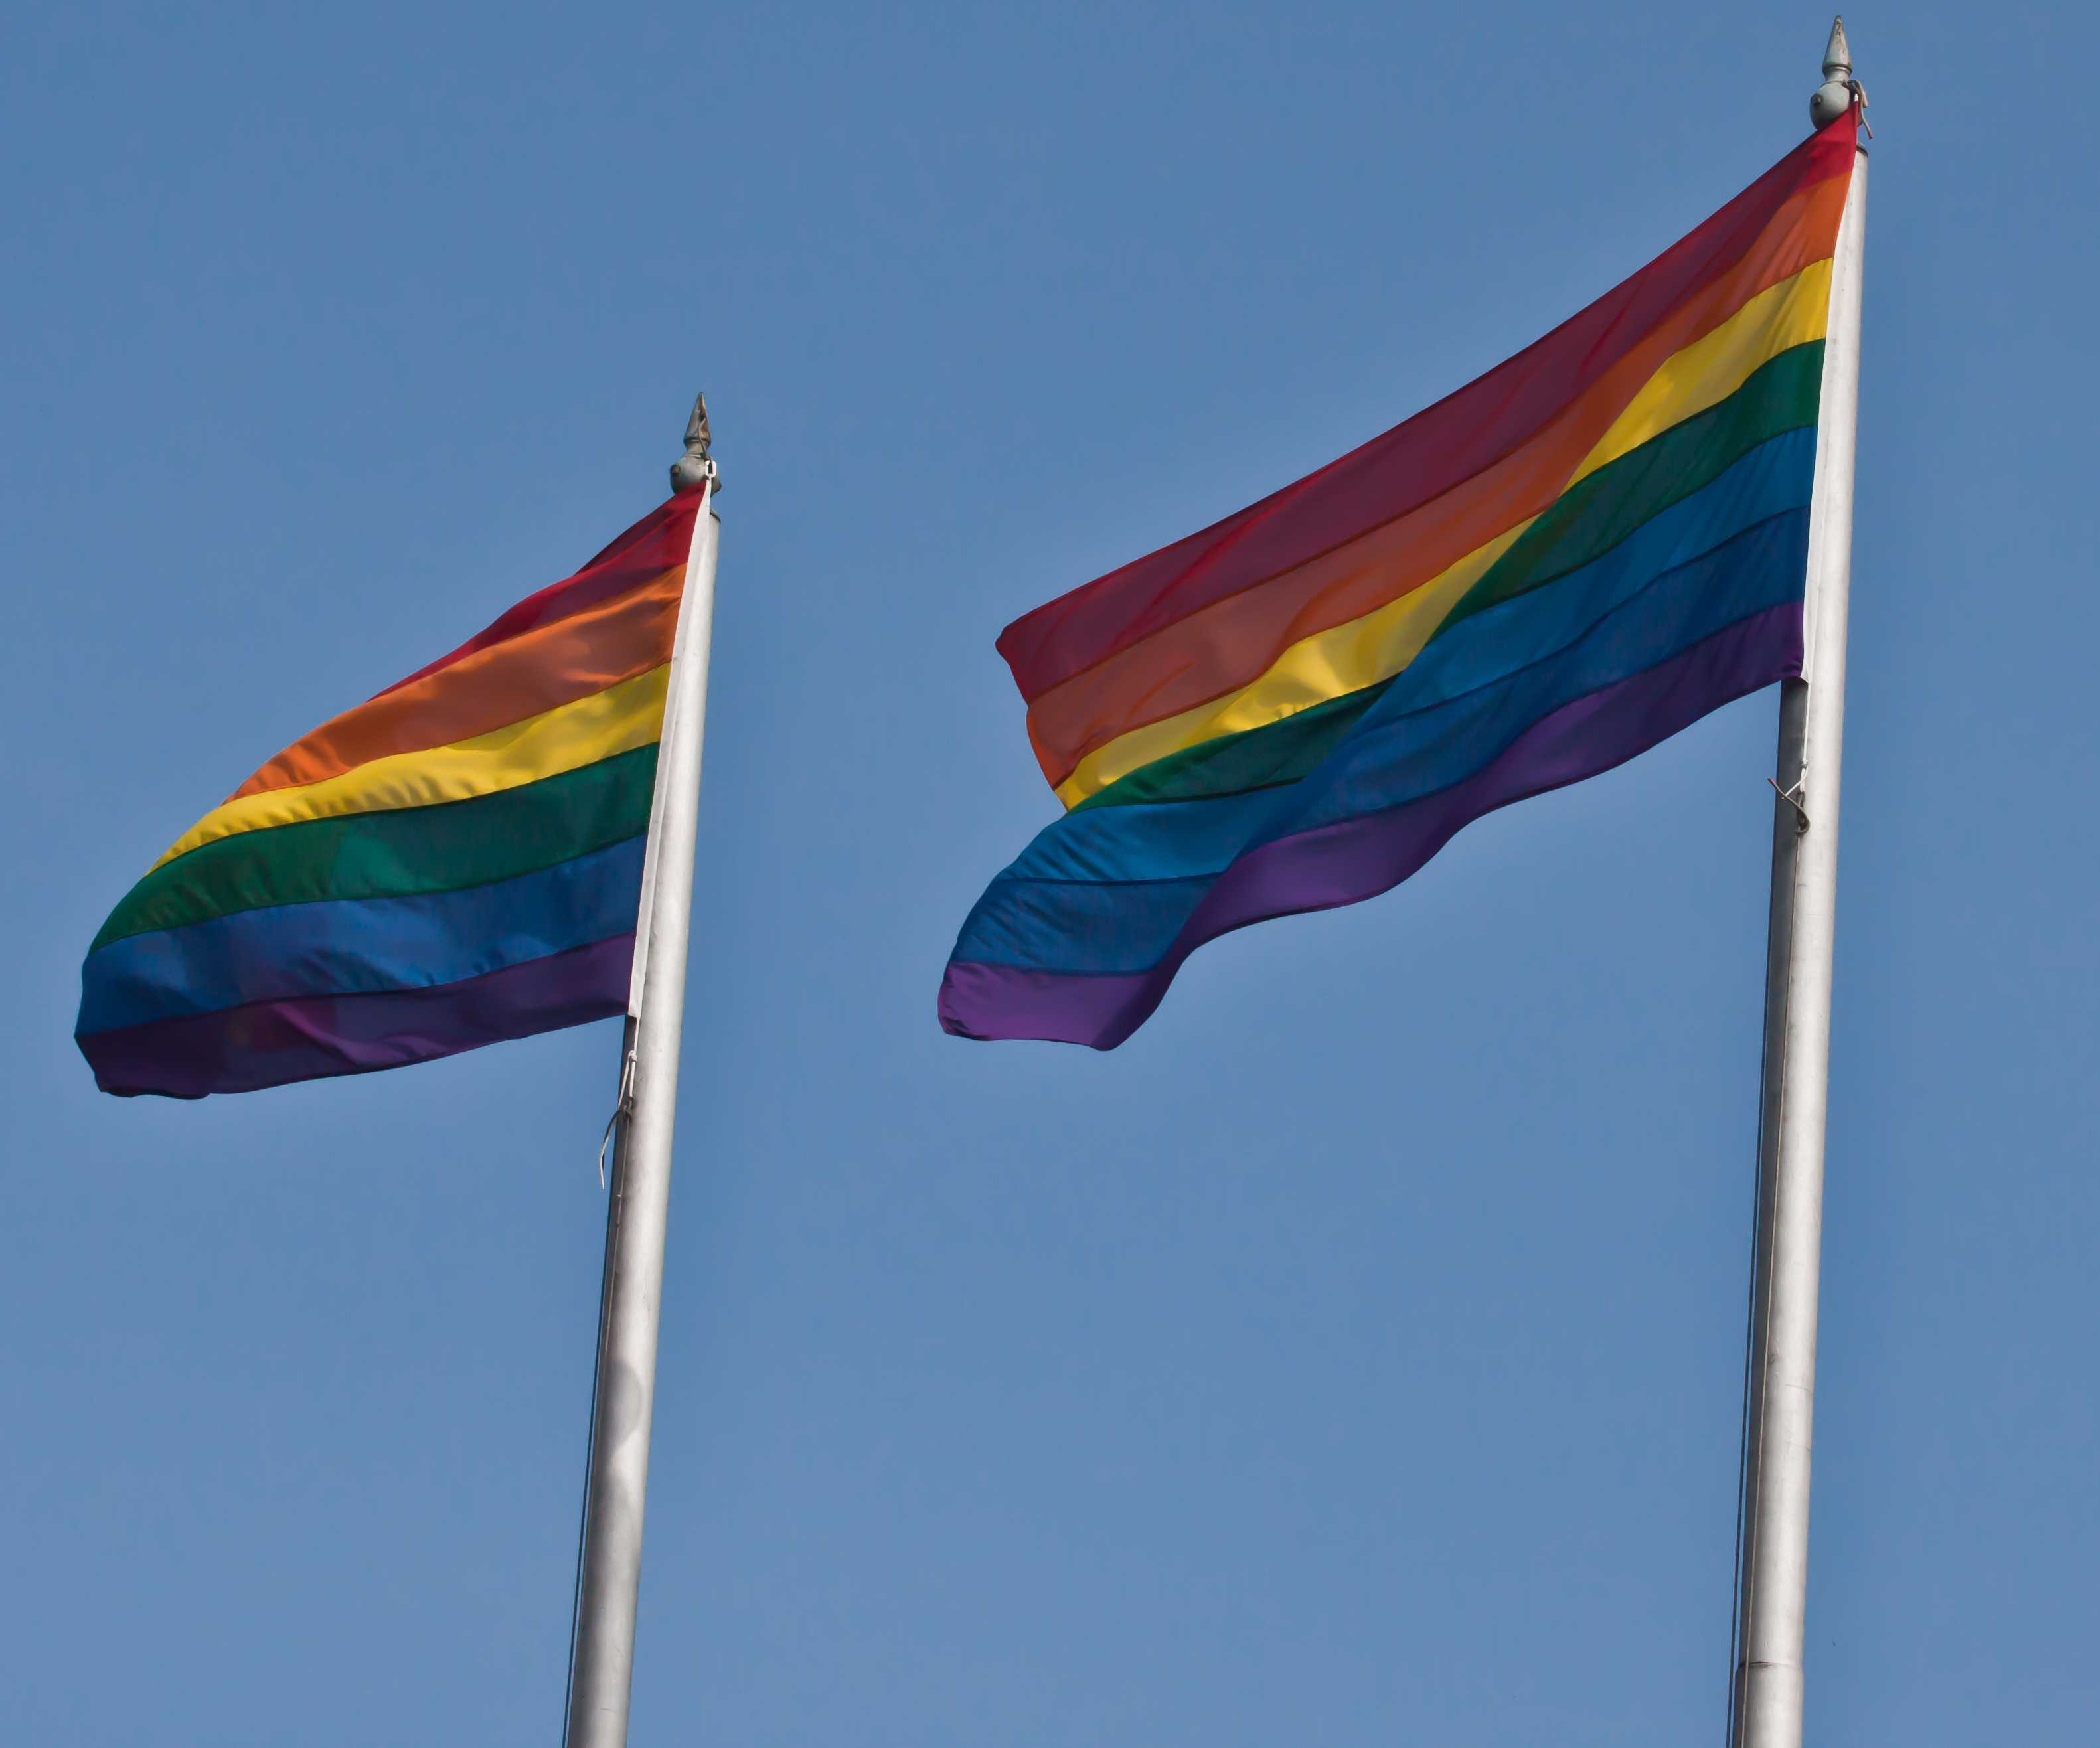 OPINION: LGBTQ+ figures in the media create more acceptance